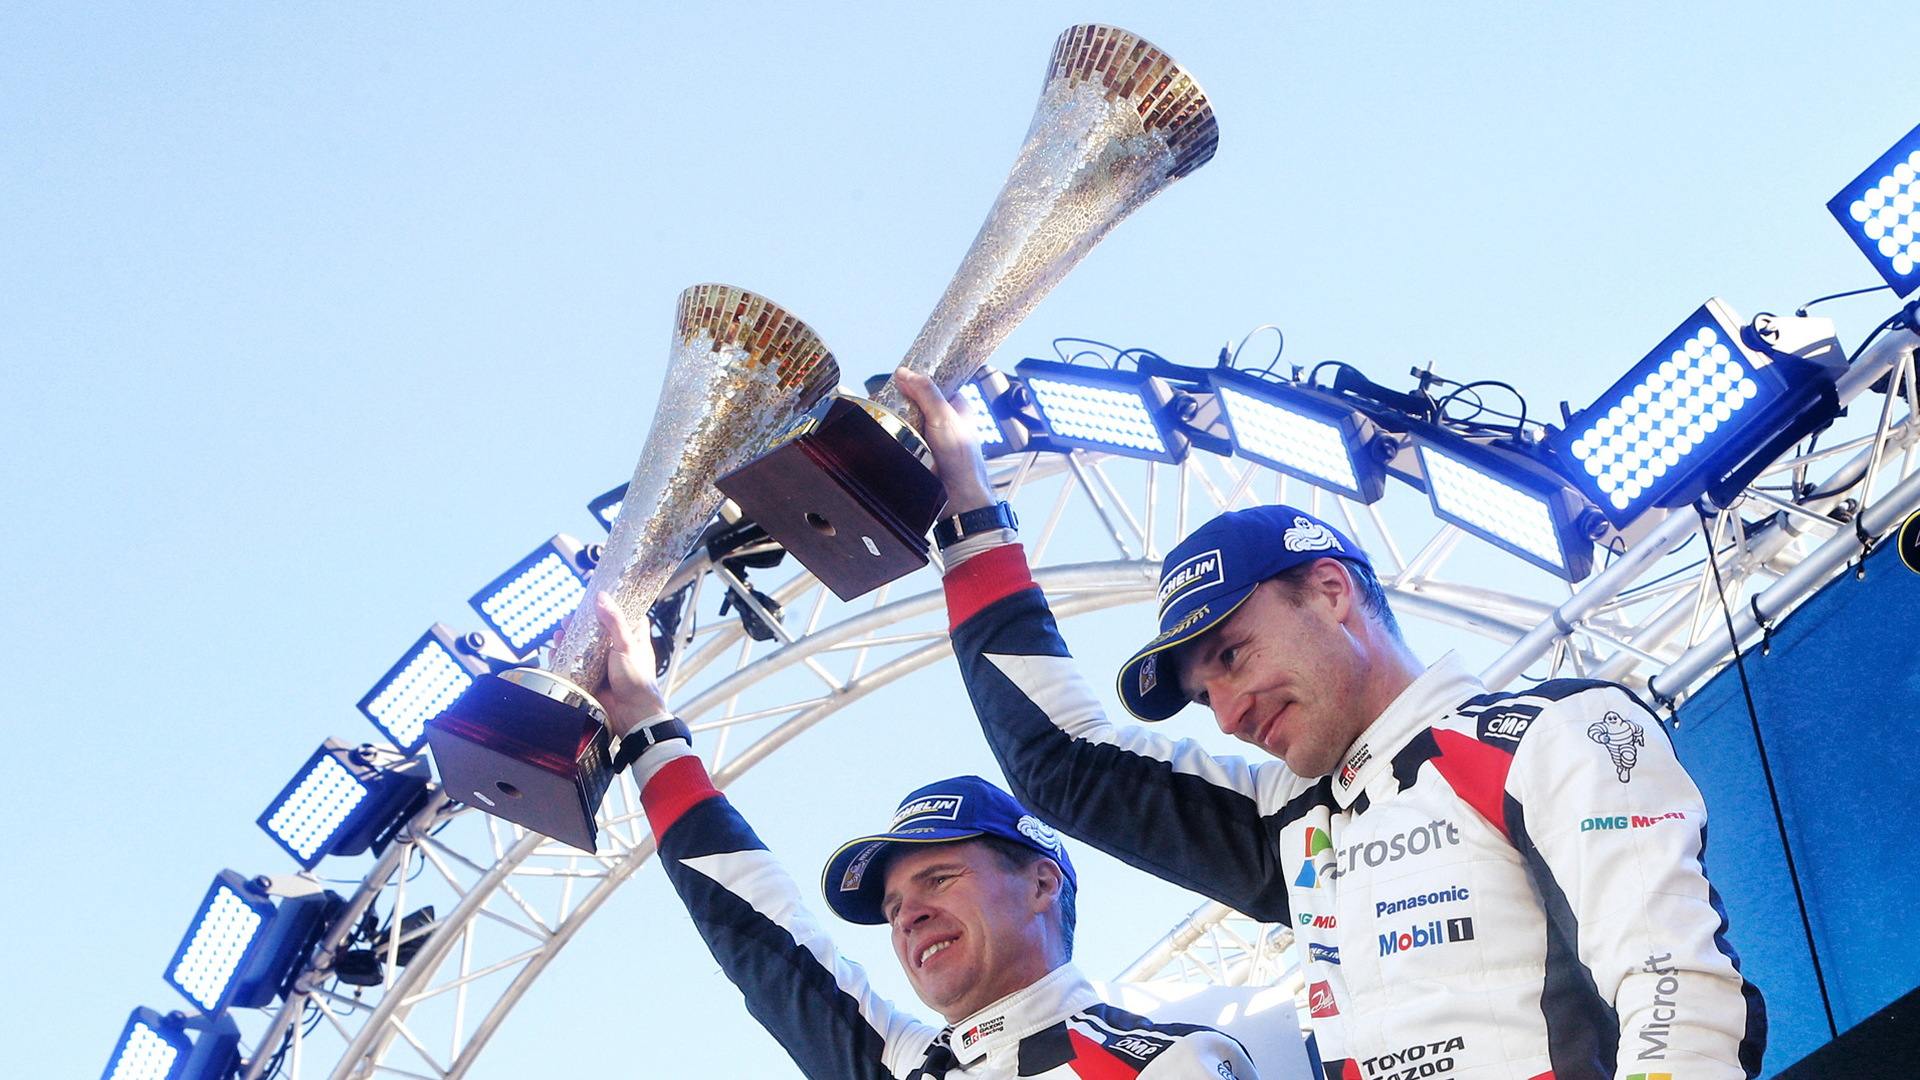 Jari-Matti Latvala and co-driver Miikka Anttila at the 2017 Rally Sweden